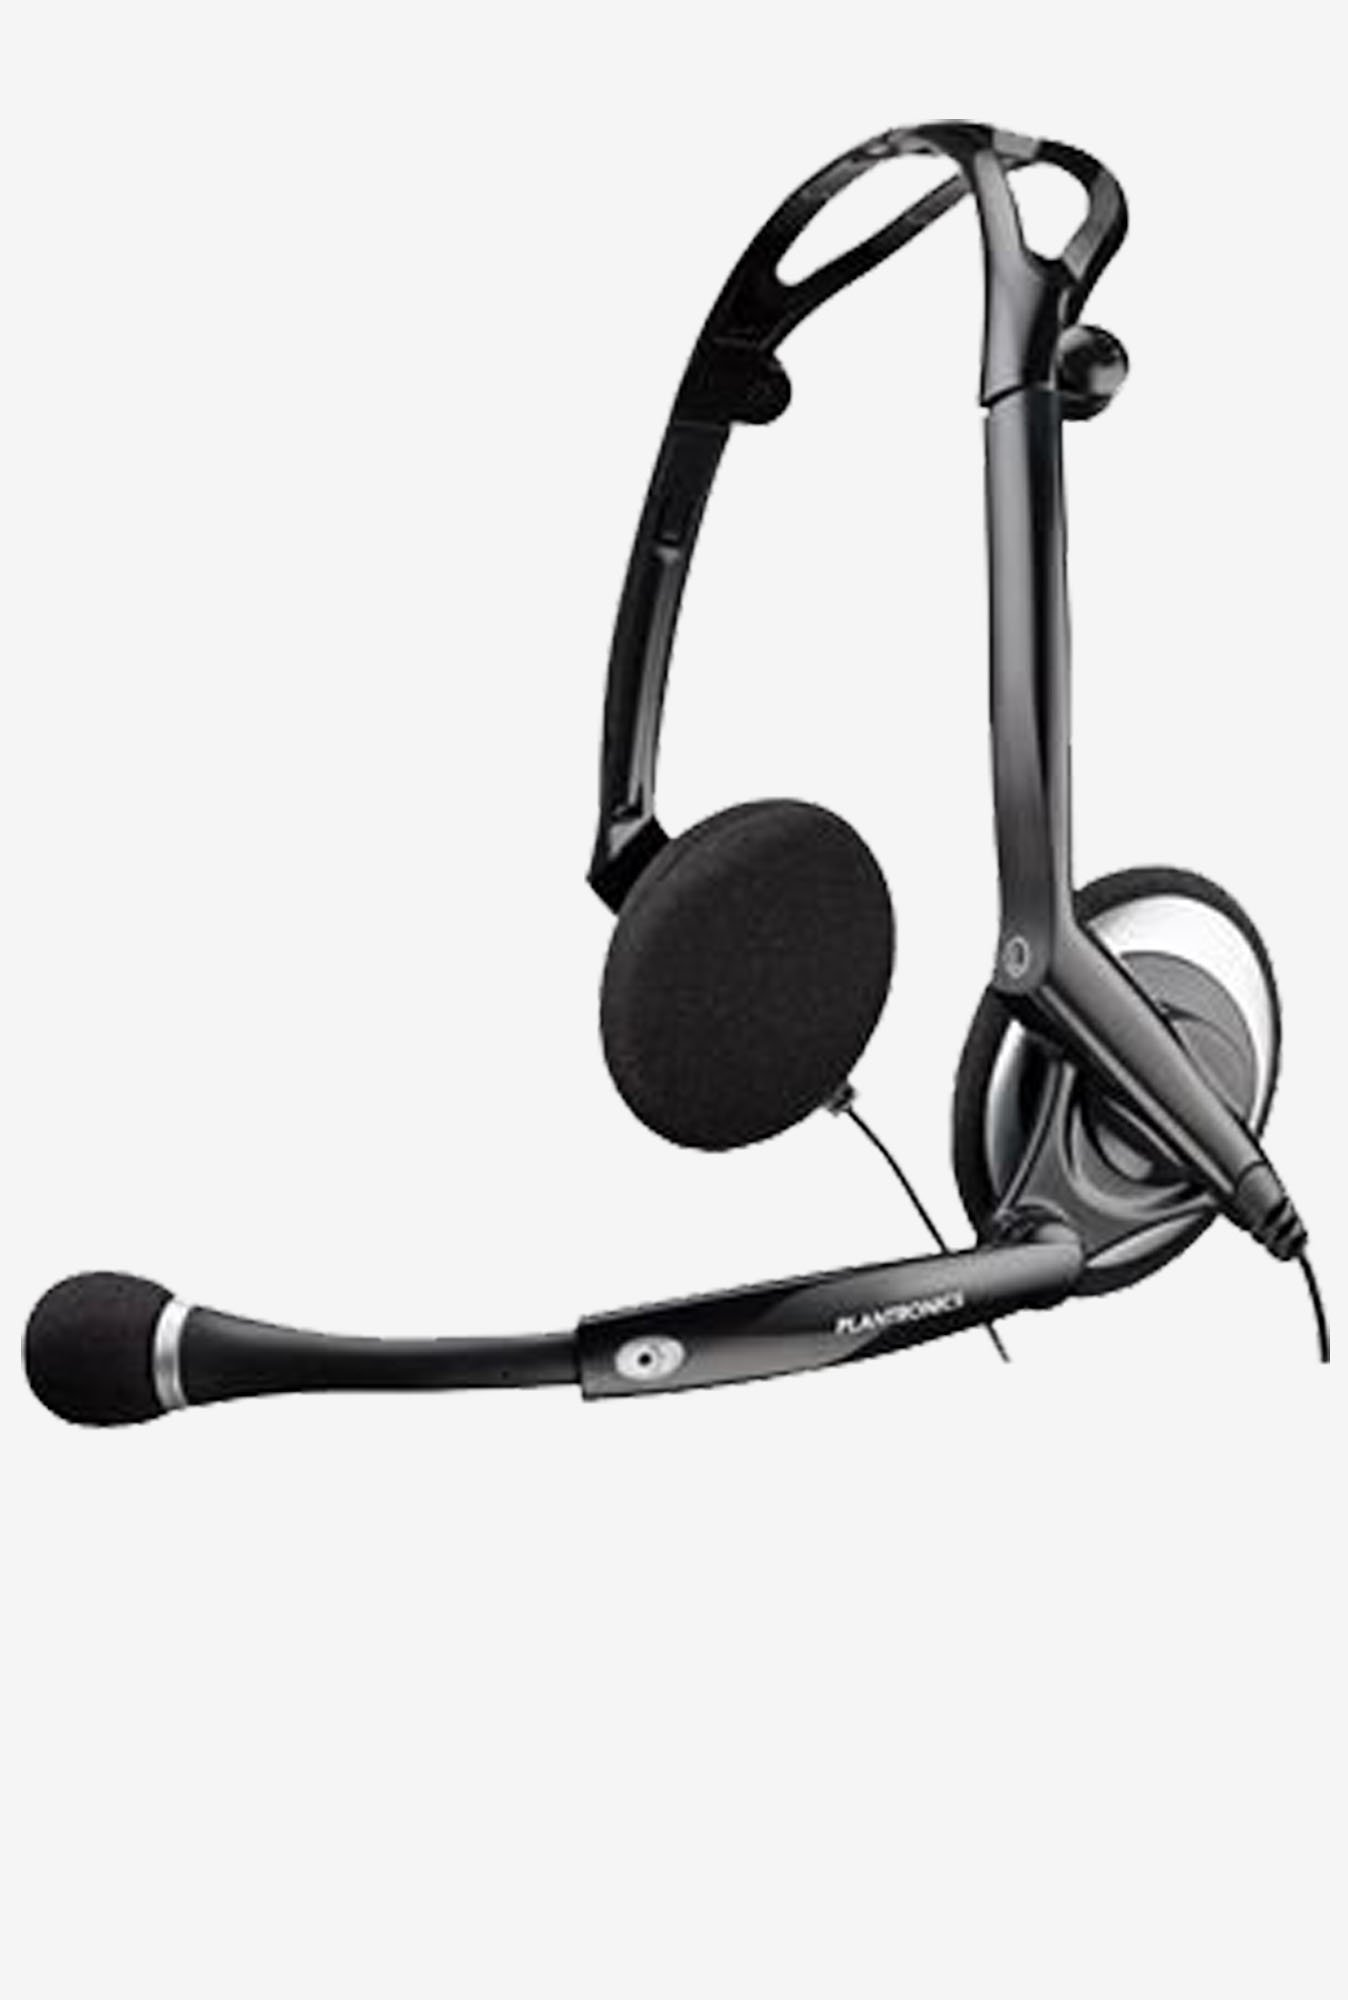 Plantronics Audio DSP-400 Headset Over the Head (Black)